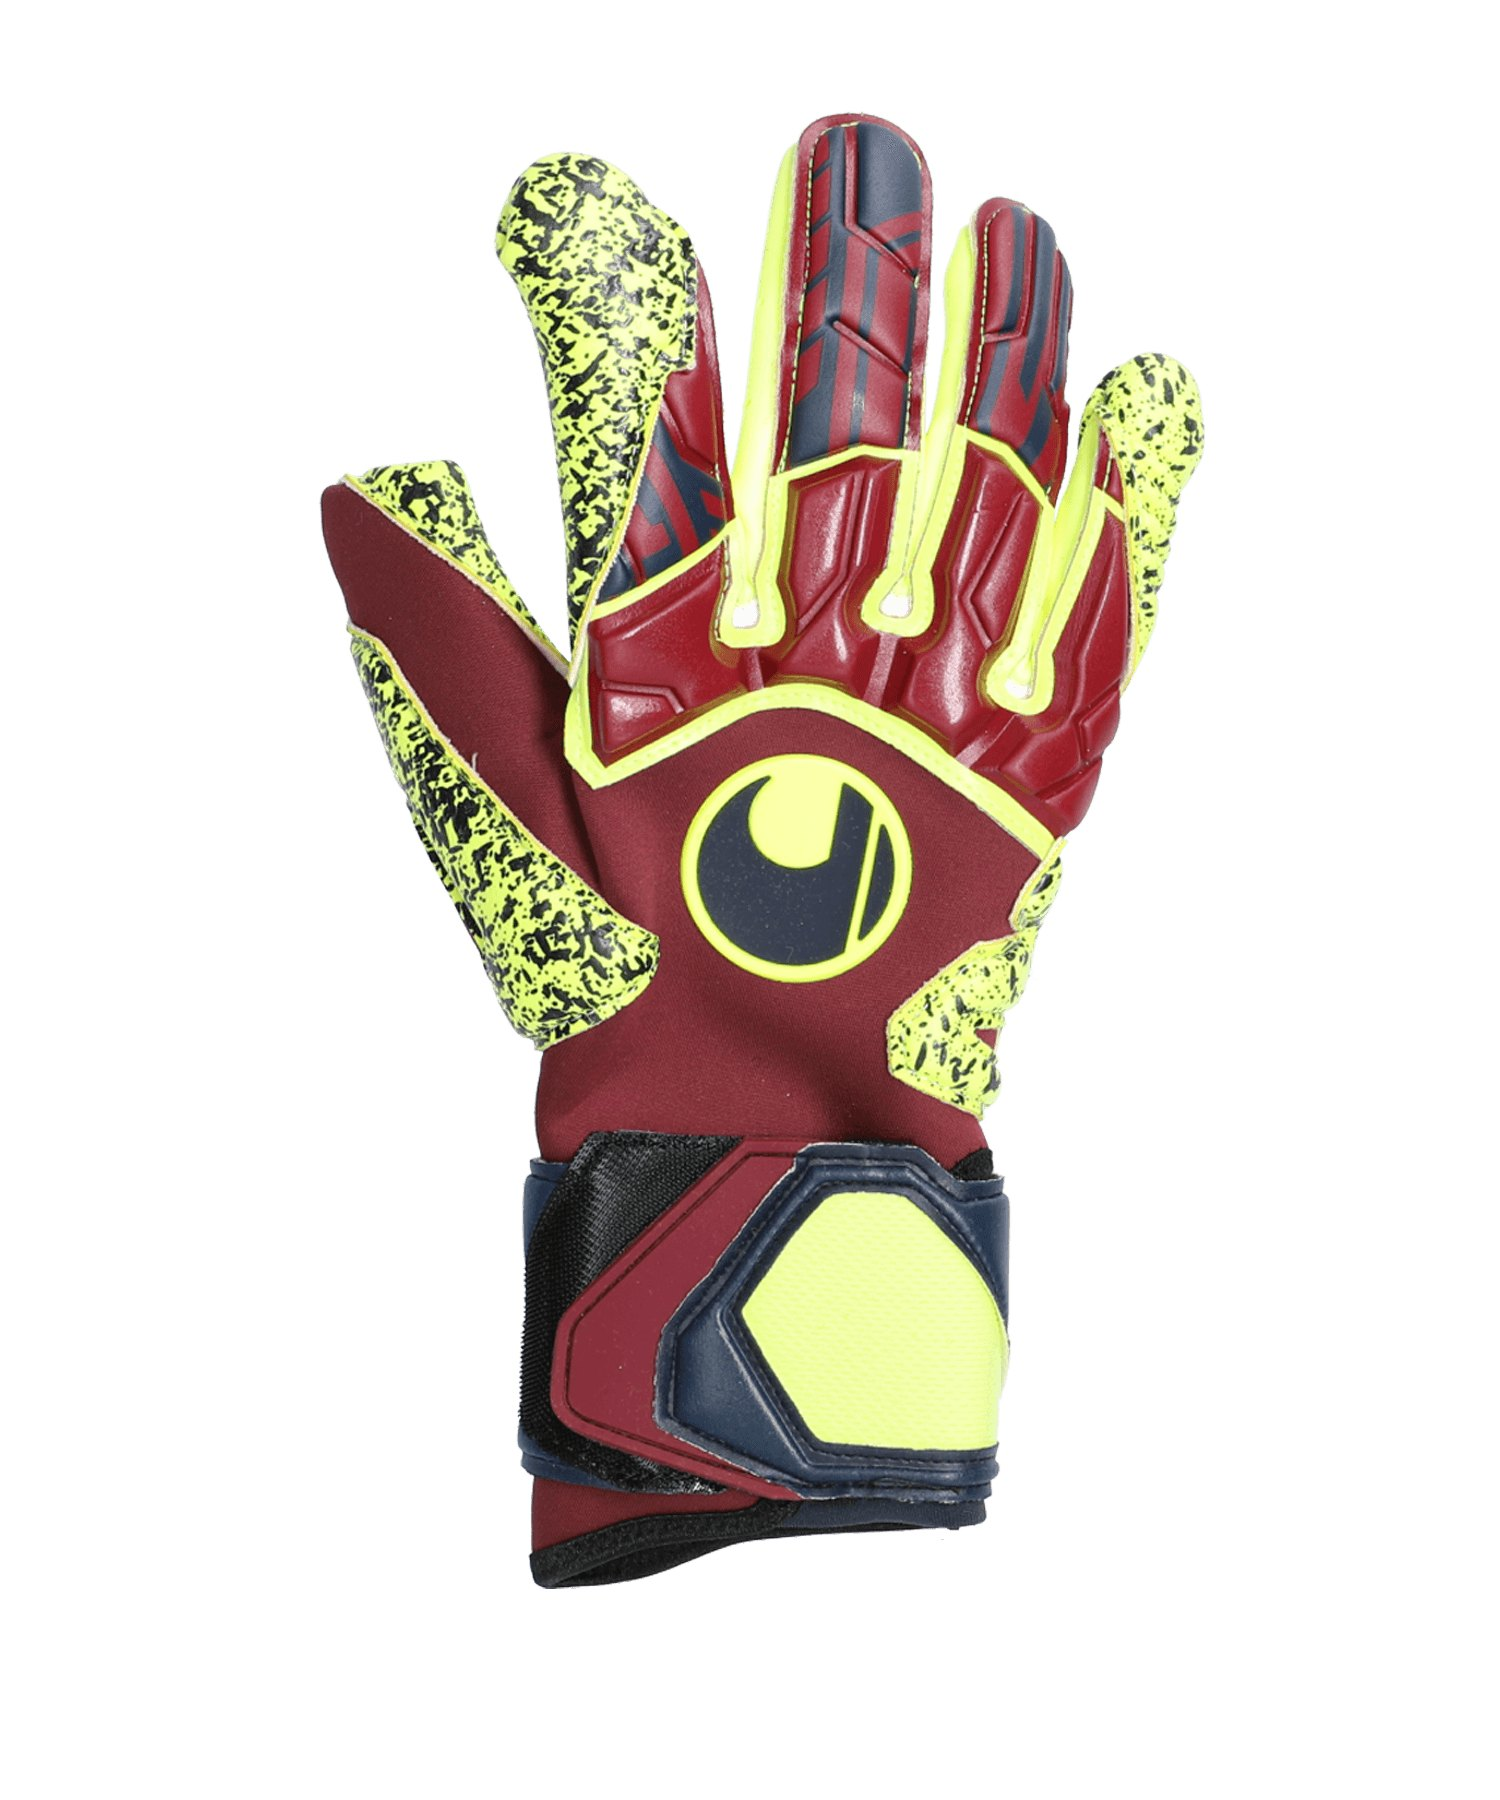 Uhlsport Dyn.Impulse Supergrip TW-Handschuh F268 - rot